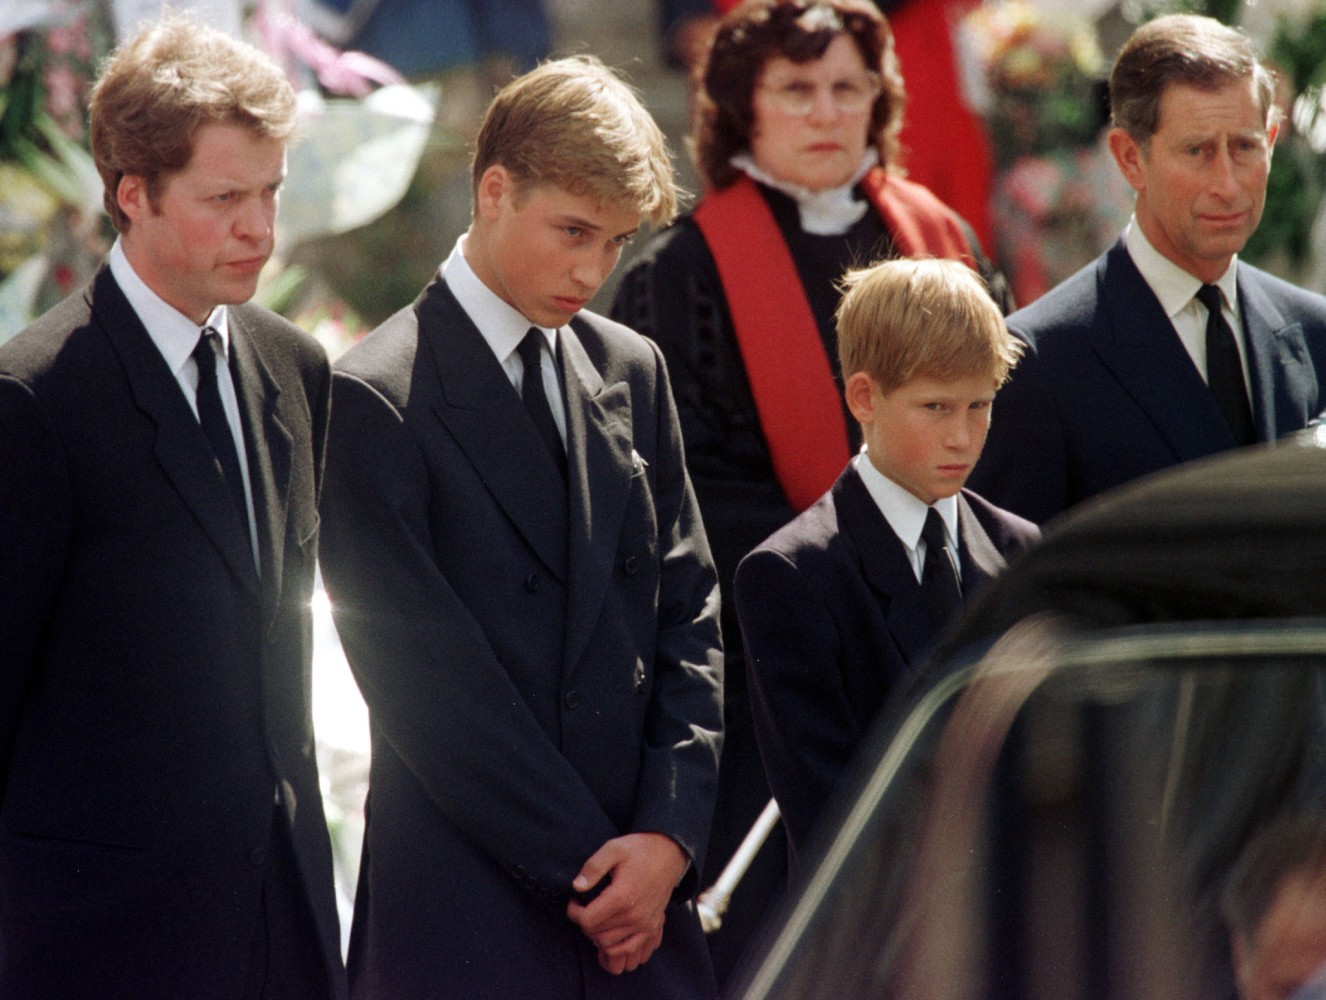 Prince Harry On Diana No Child Should Have To Walk Behind